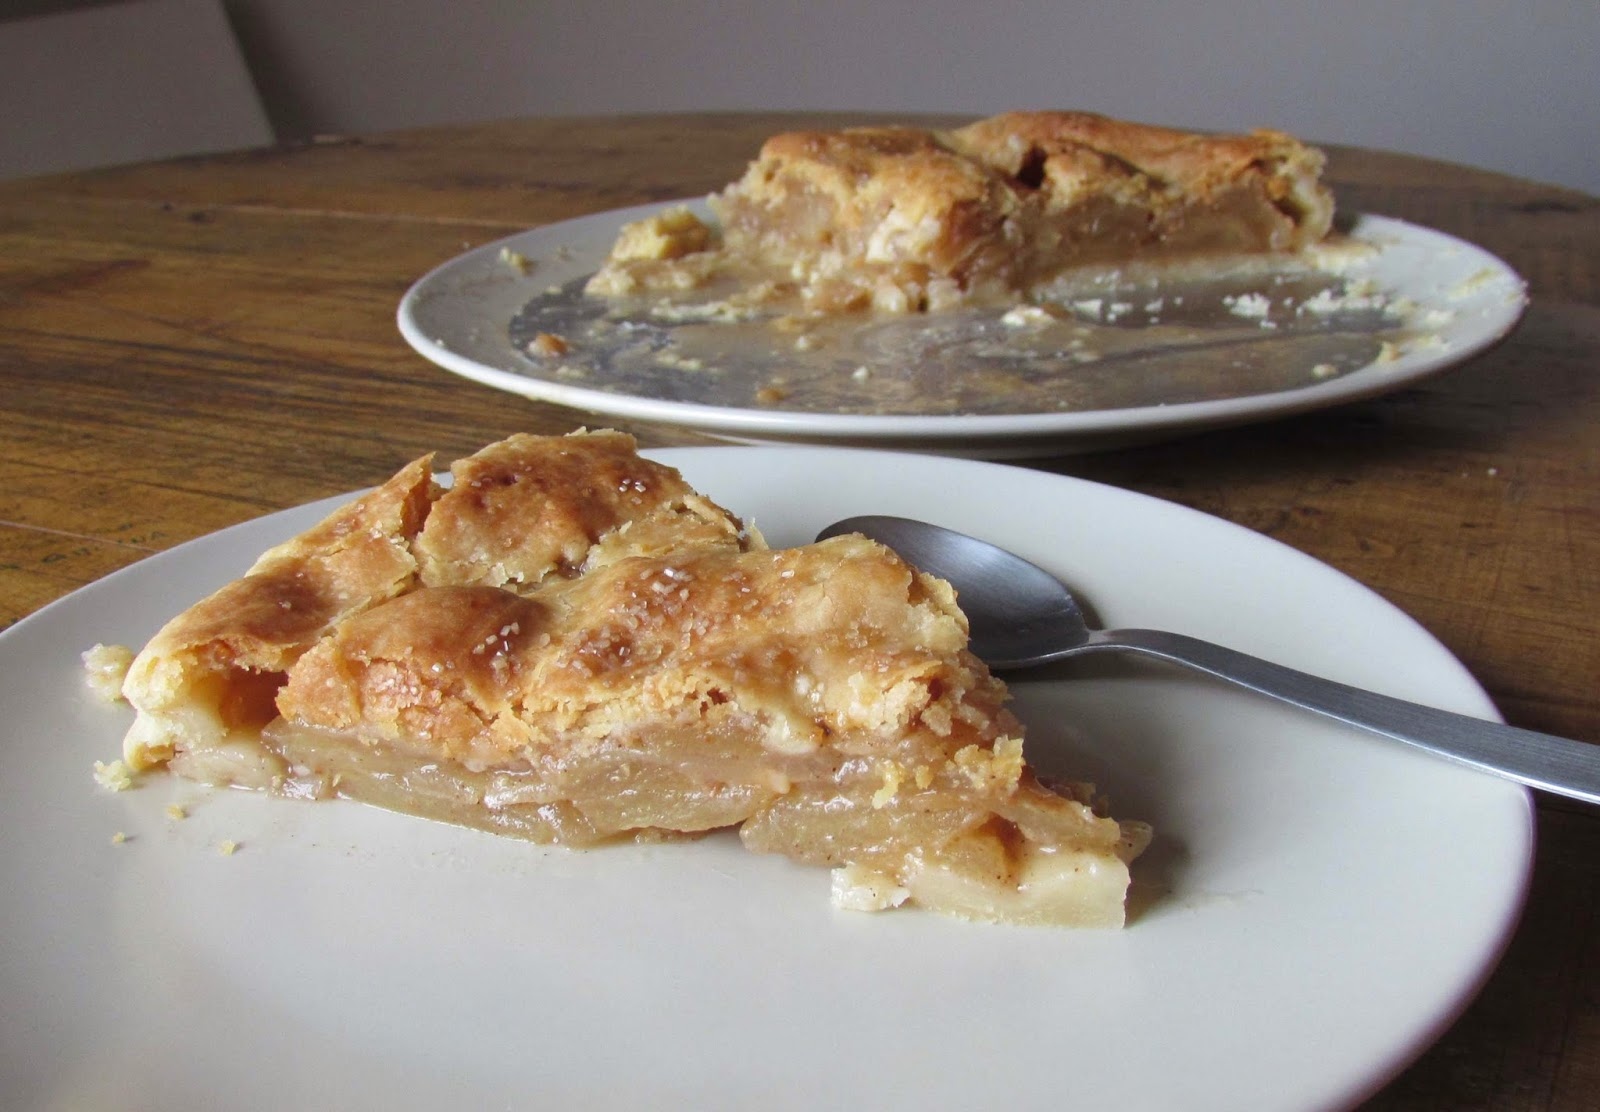 Tarta de manzana (Apple pie), receta